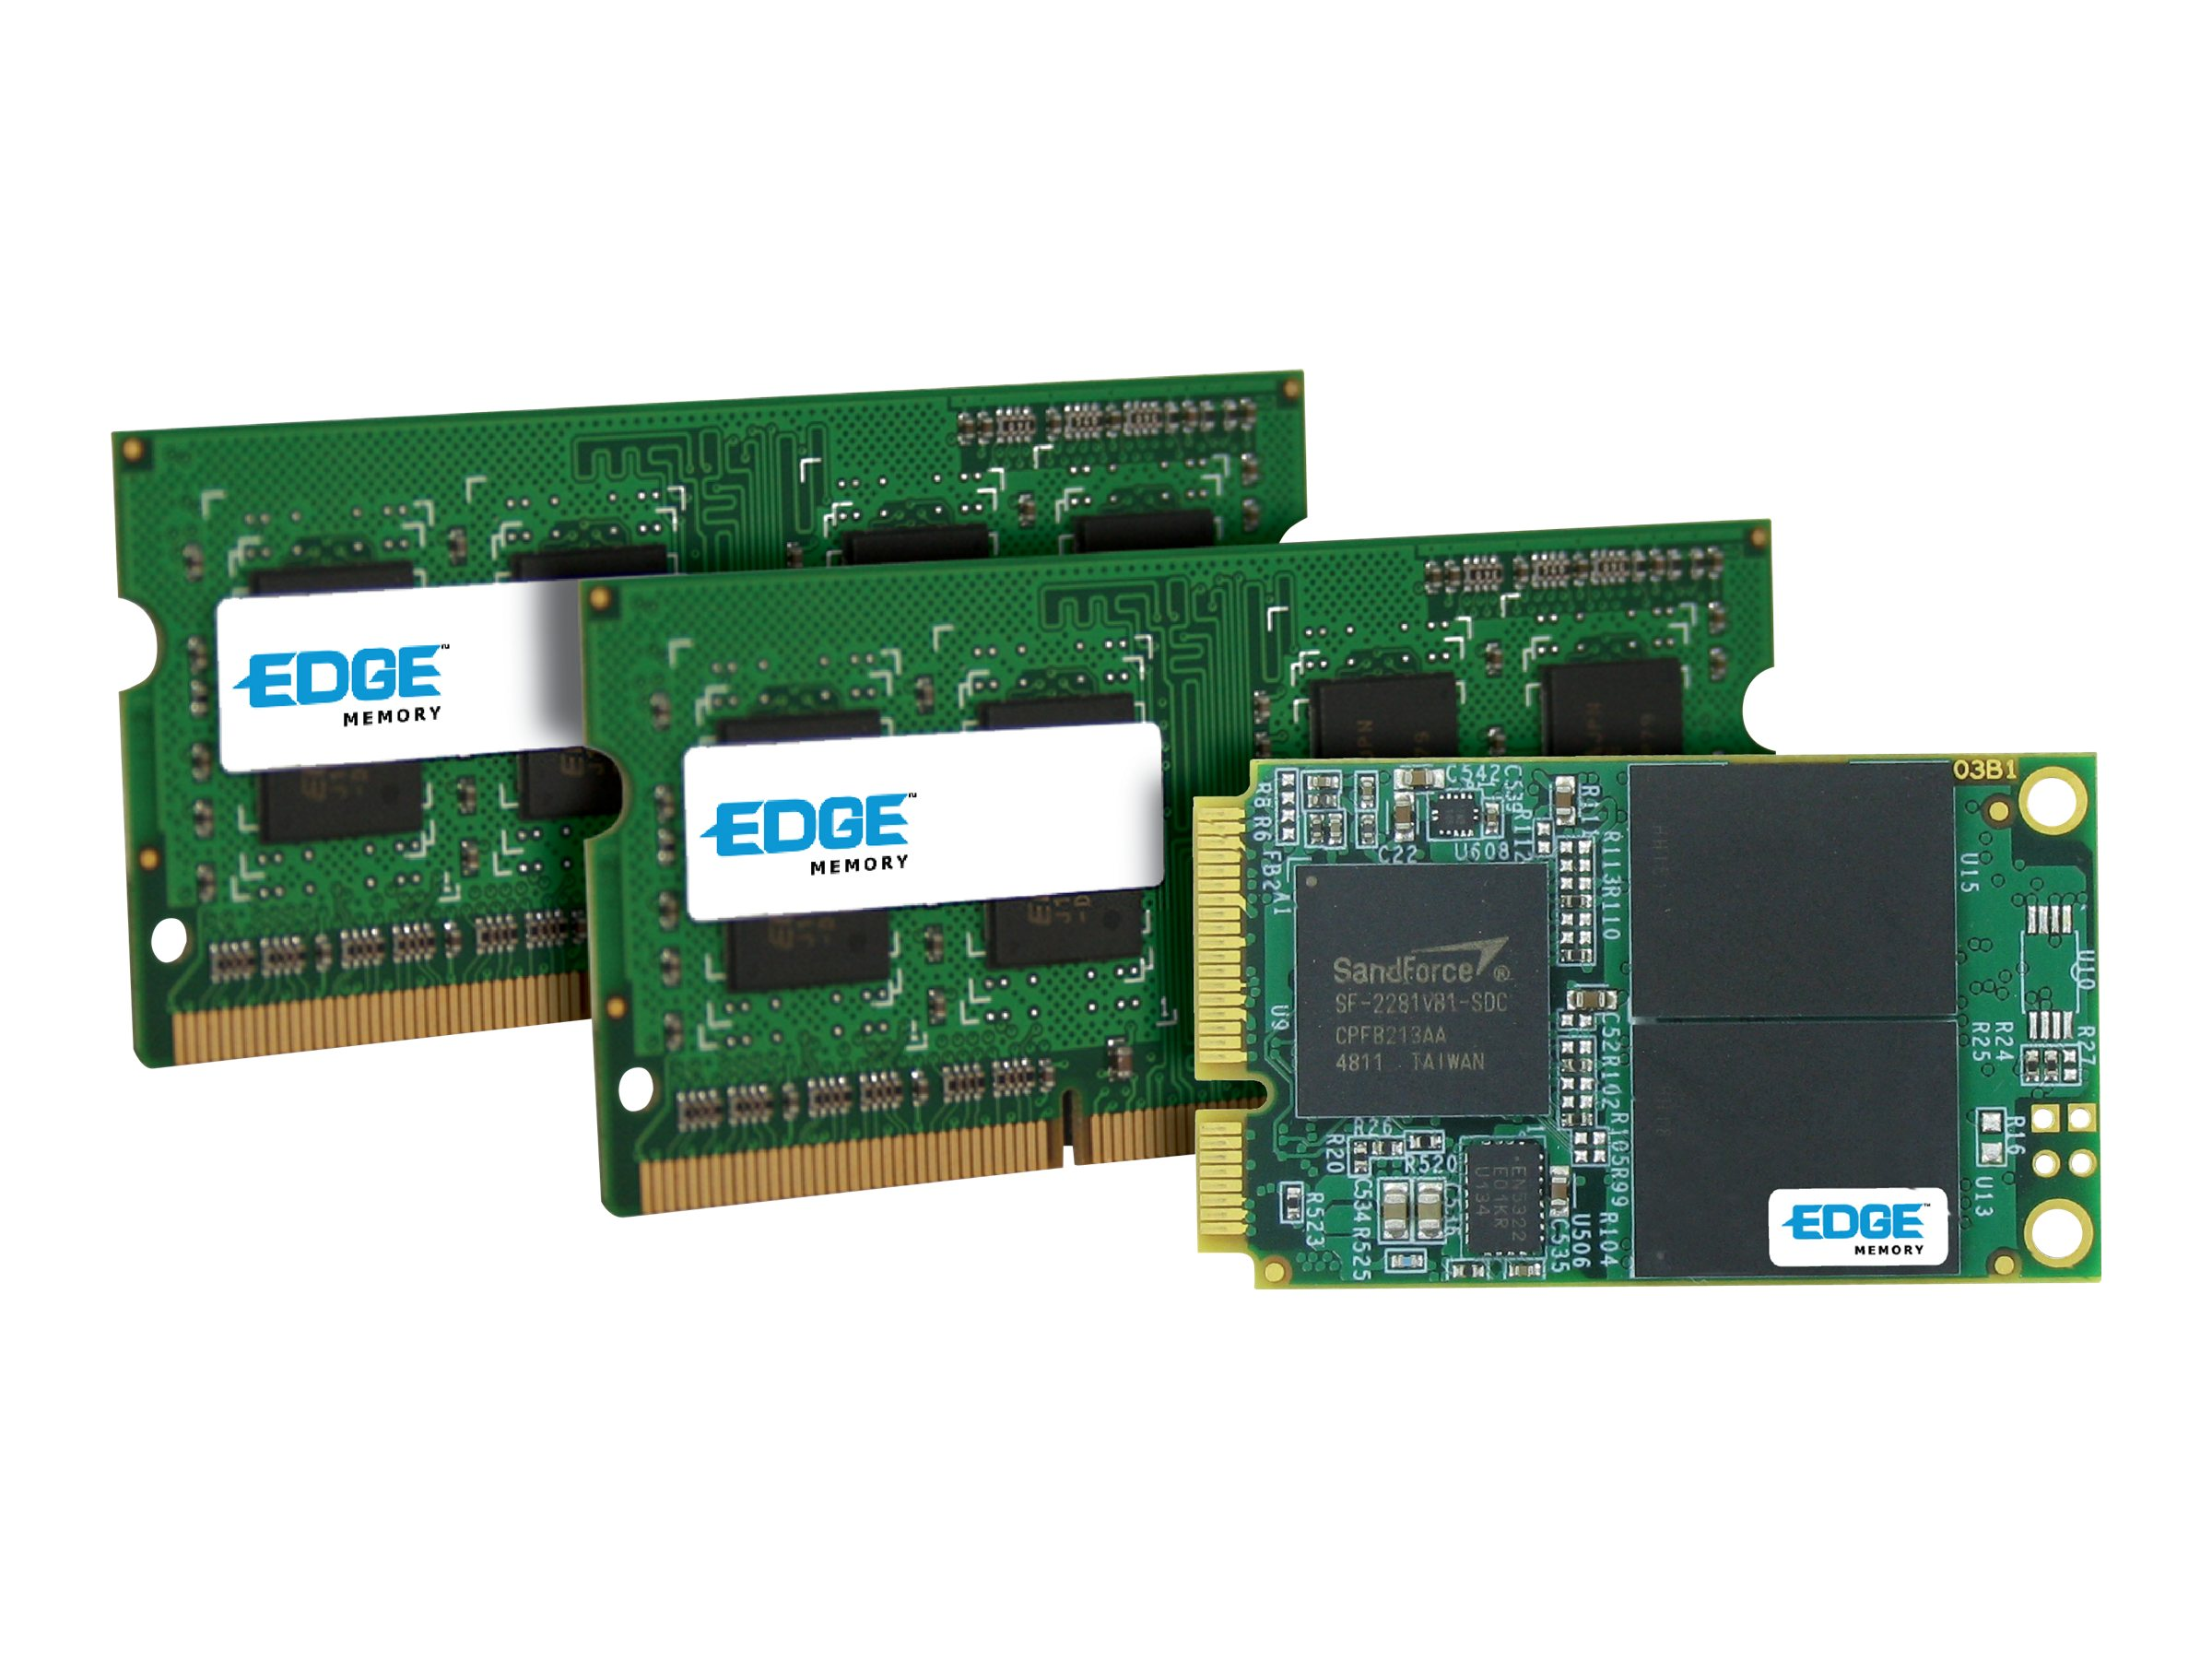 Edge 60GB Boost Pro mSATA 6Gb s Solid State Drive w  4GB PC3-12800 SODIMM Kit for SFF Mini PC, PE239909, 16240041, Solid State Drives - Internal